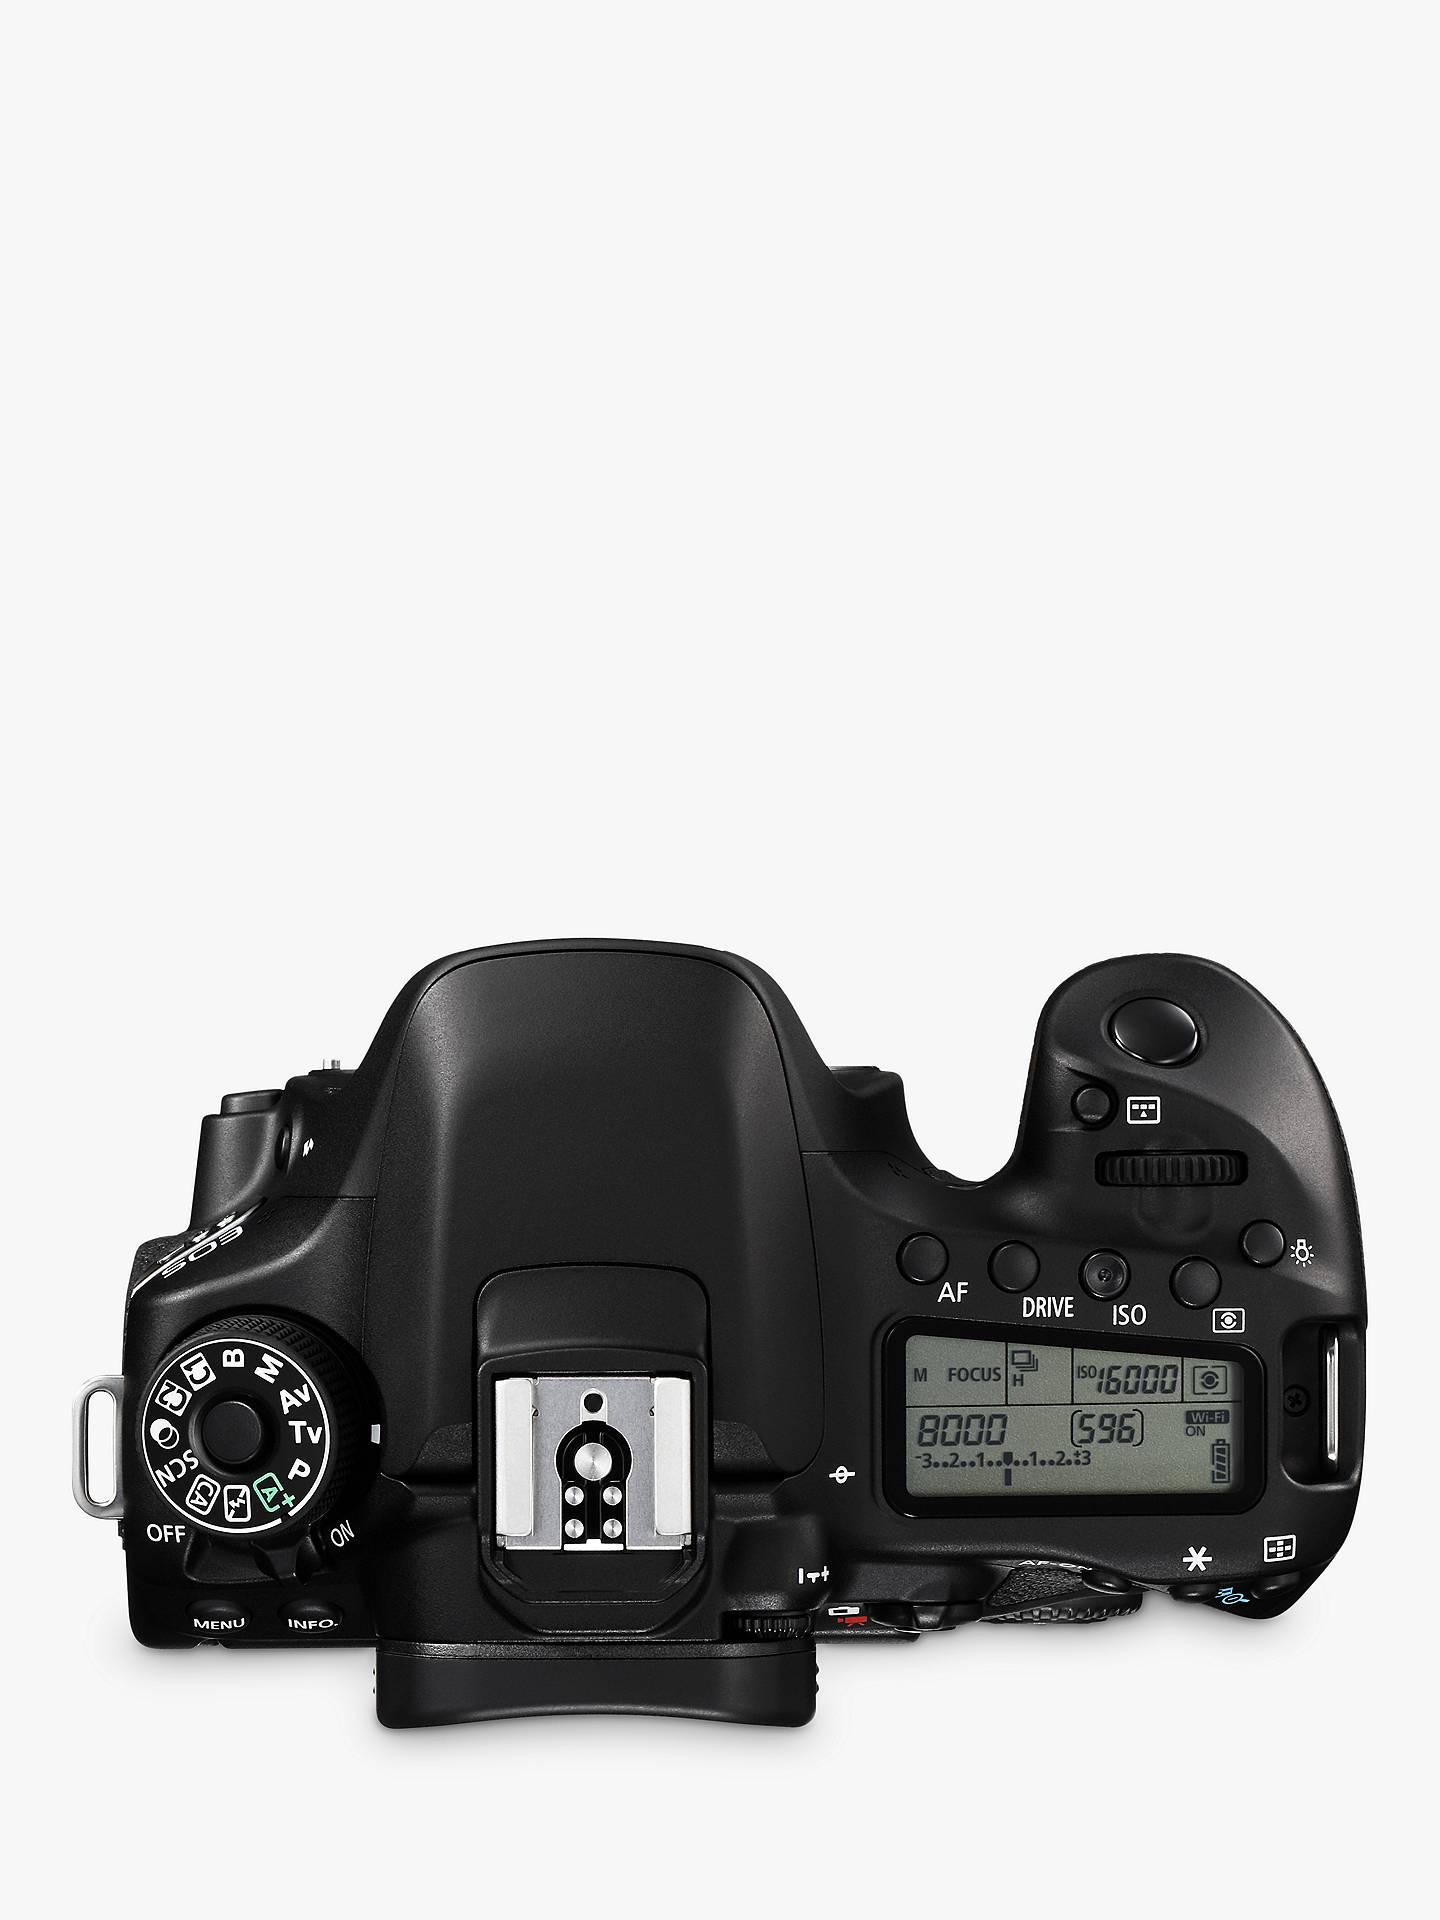 Canon EOS 80D Digital SLR Camera, HD 1080p, 24 2MP, Wi-Fi, NFC With 3